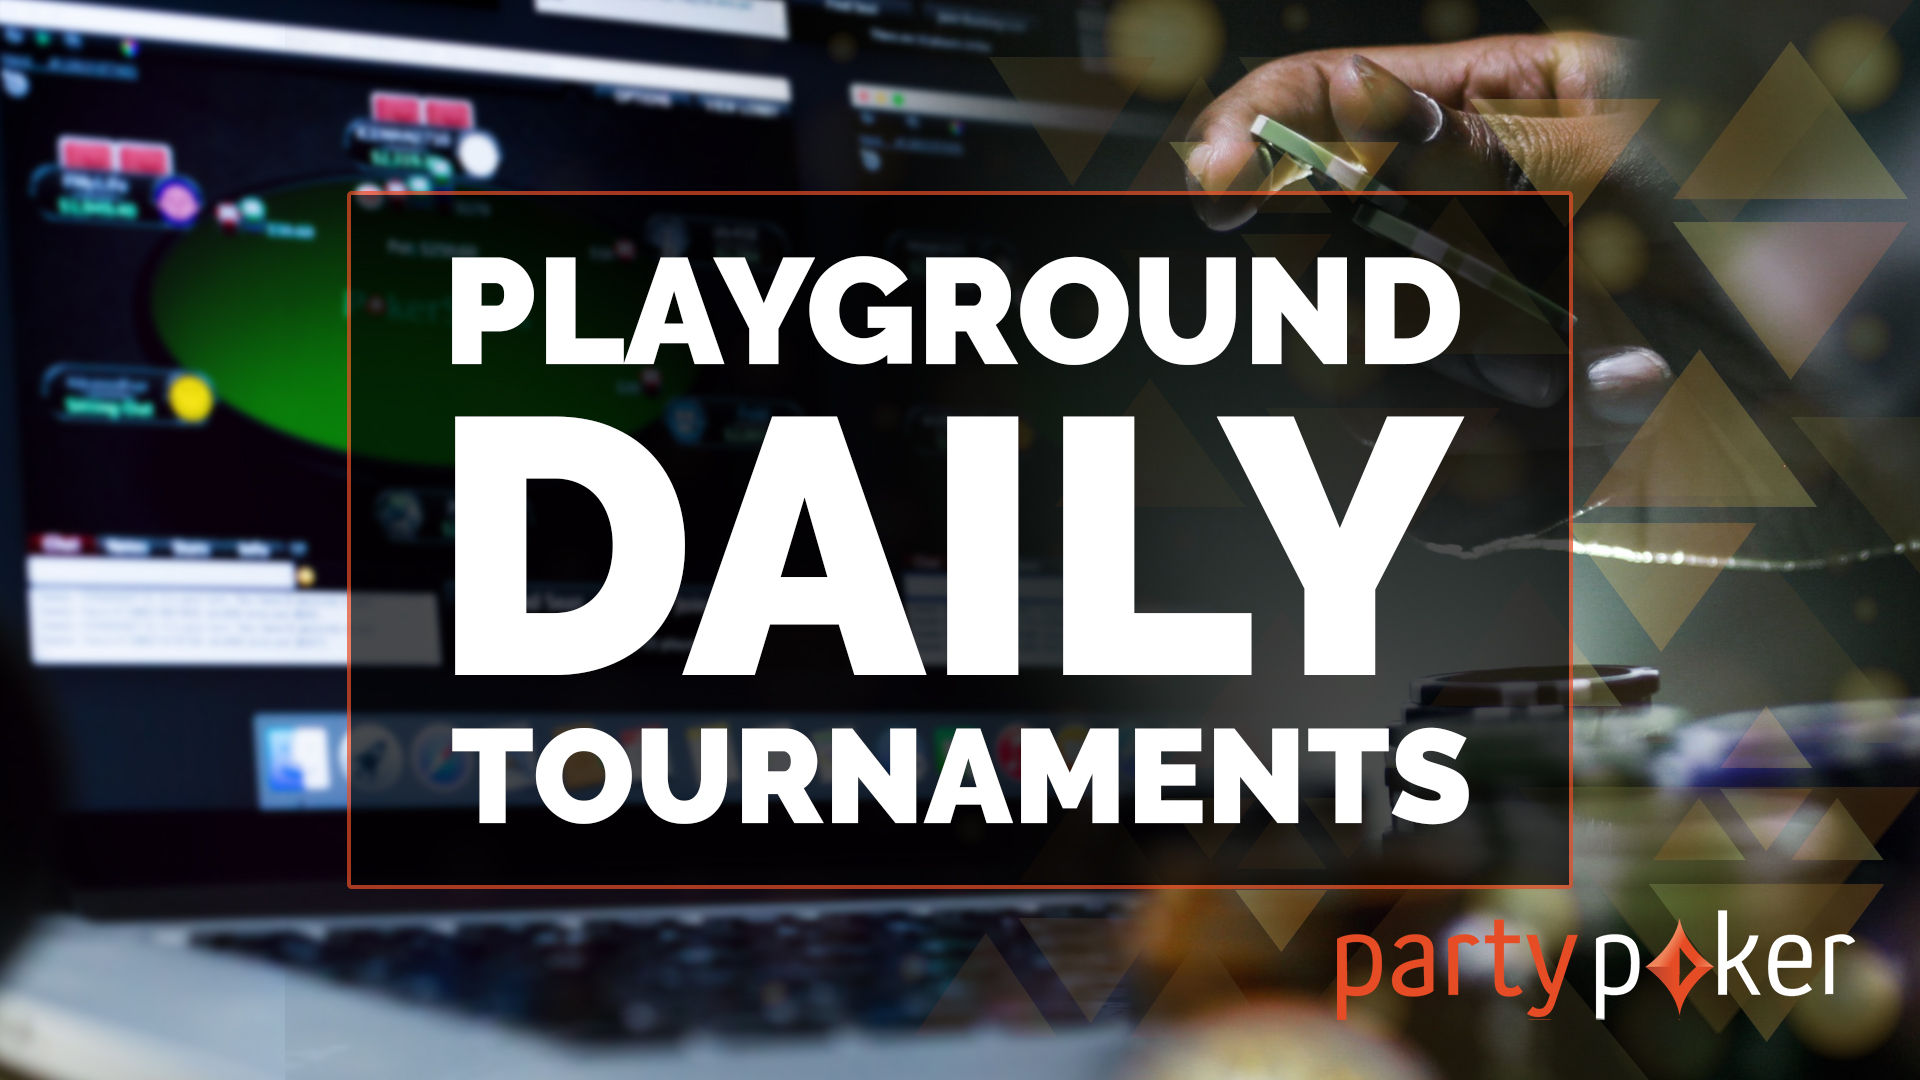 Tournaments on partypoker